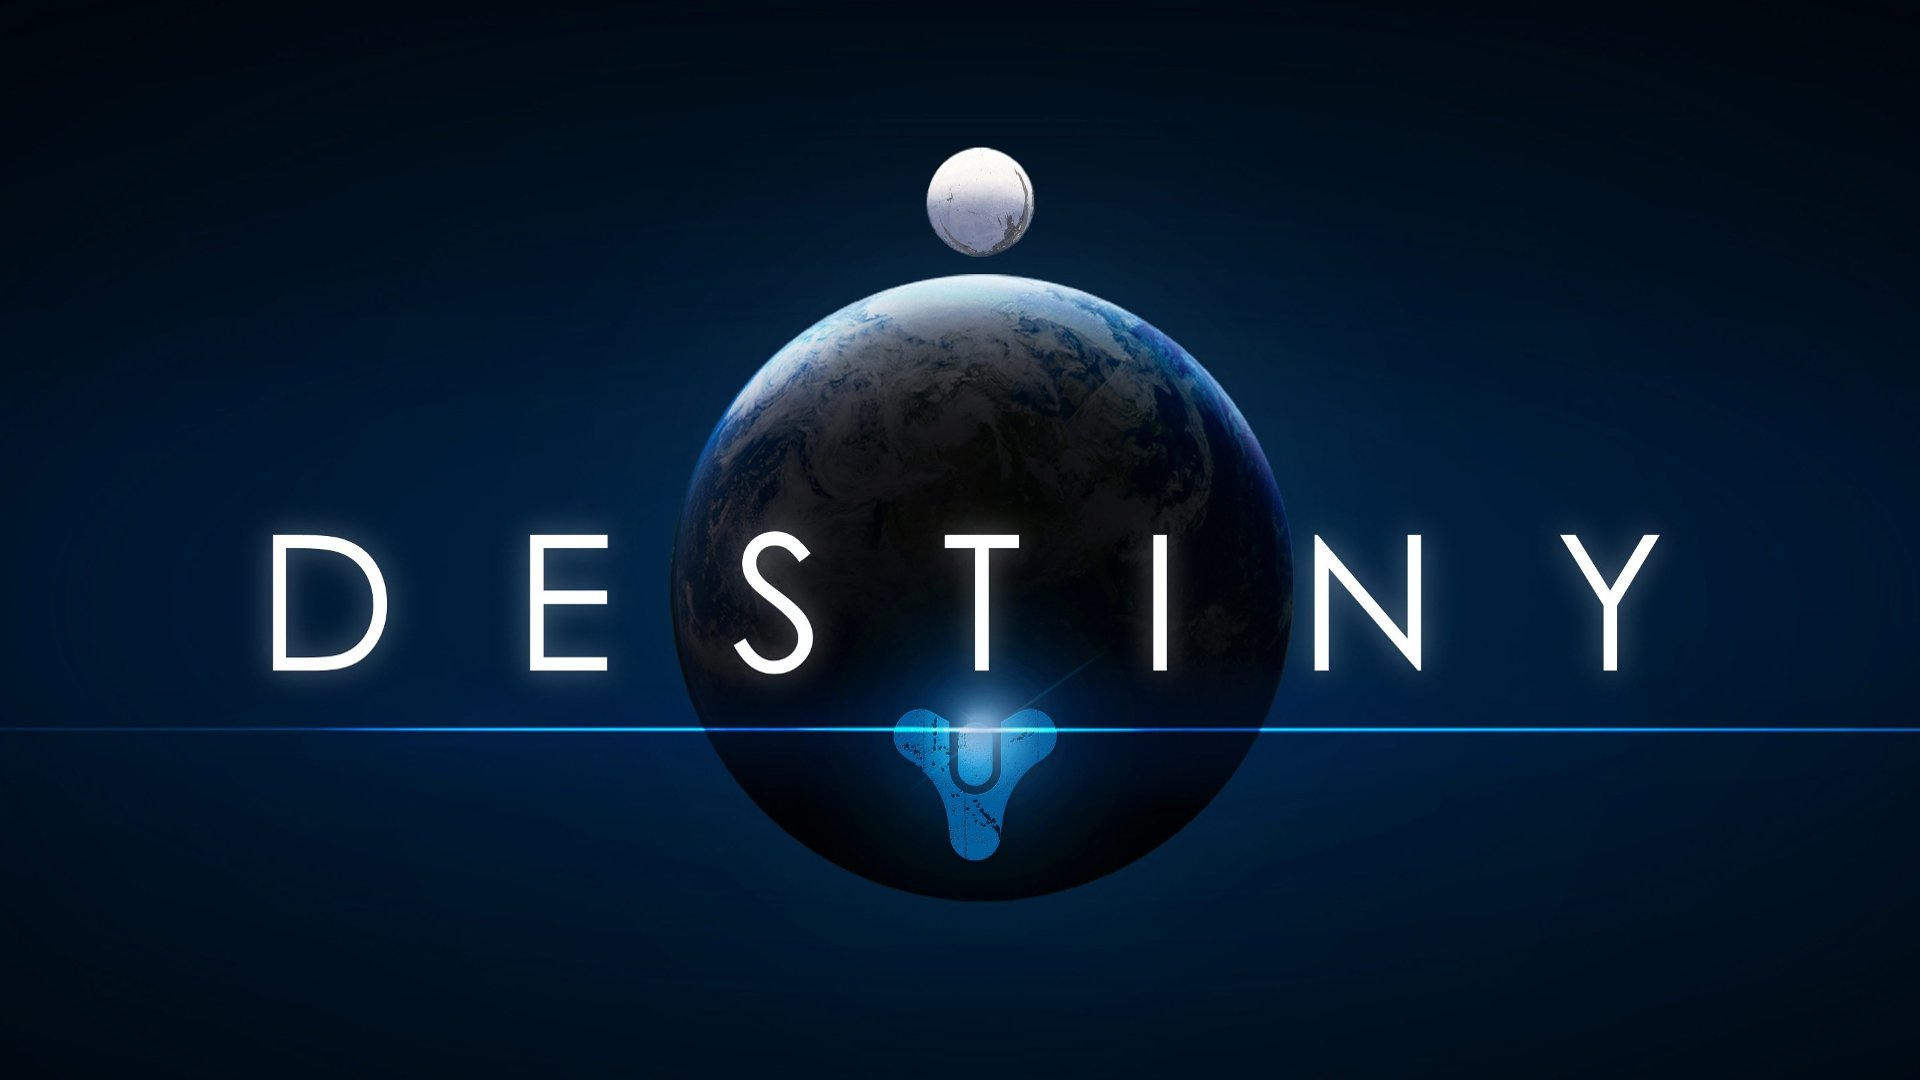 Destiny Planet View Lets You Explore The Worlds of the Game